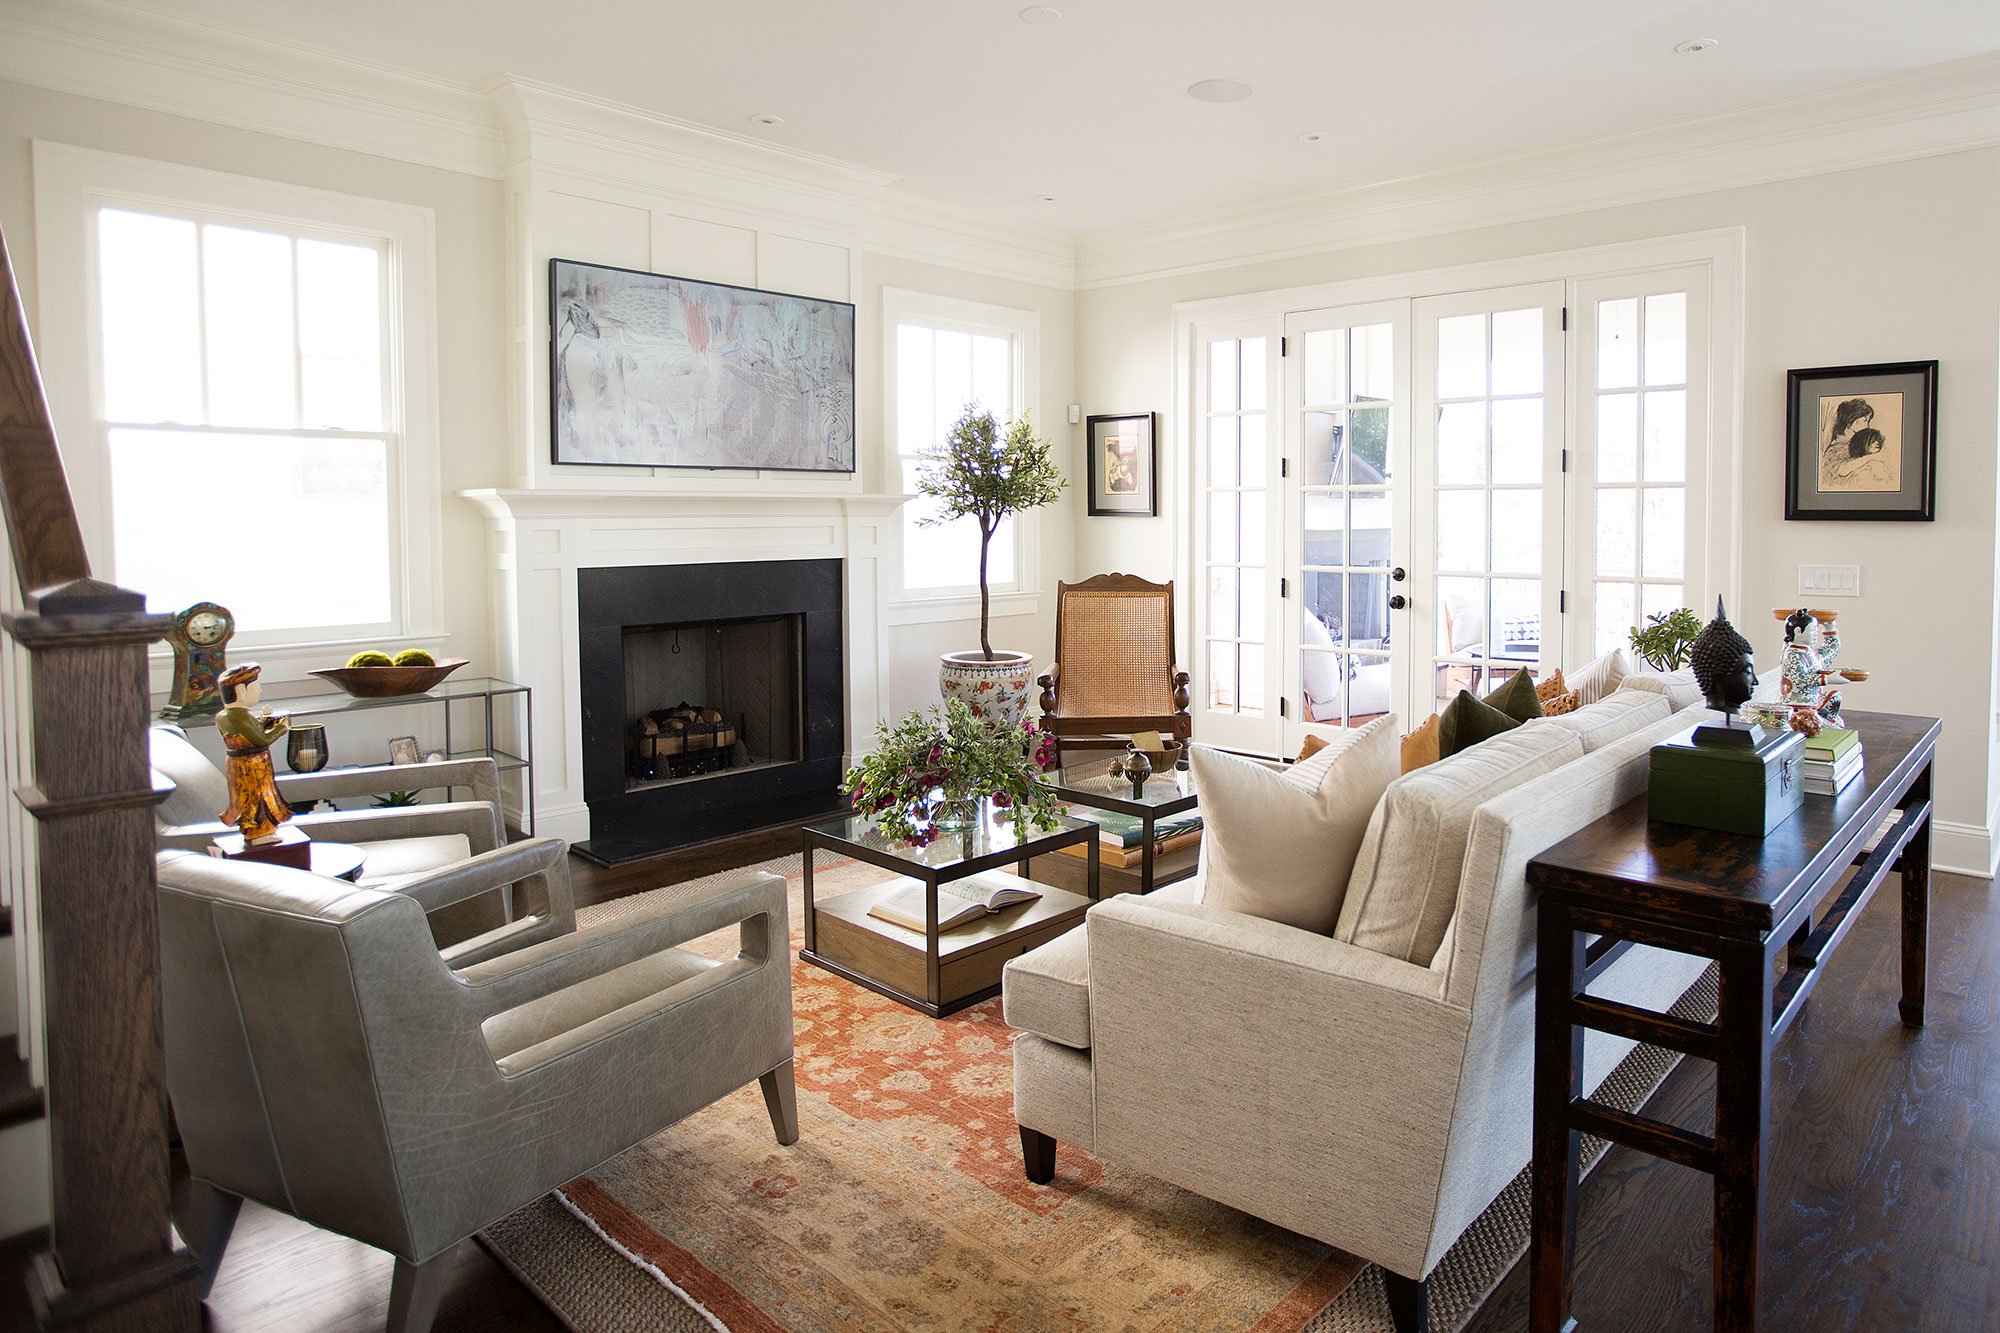 Transitional living room with beige sofa, chairs, and orange area rug